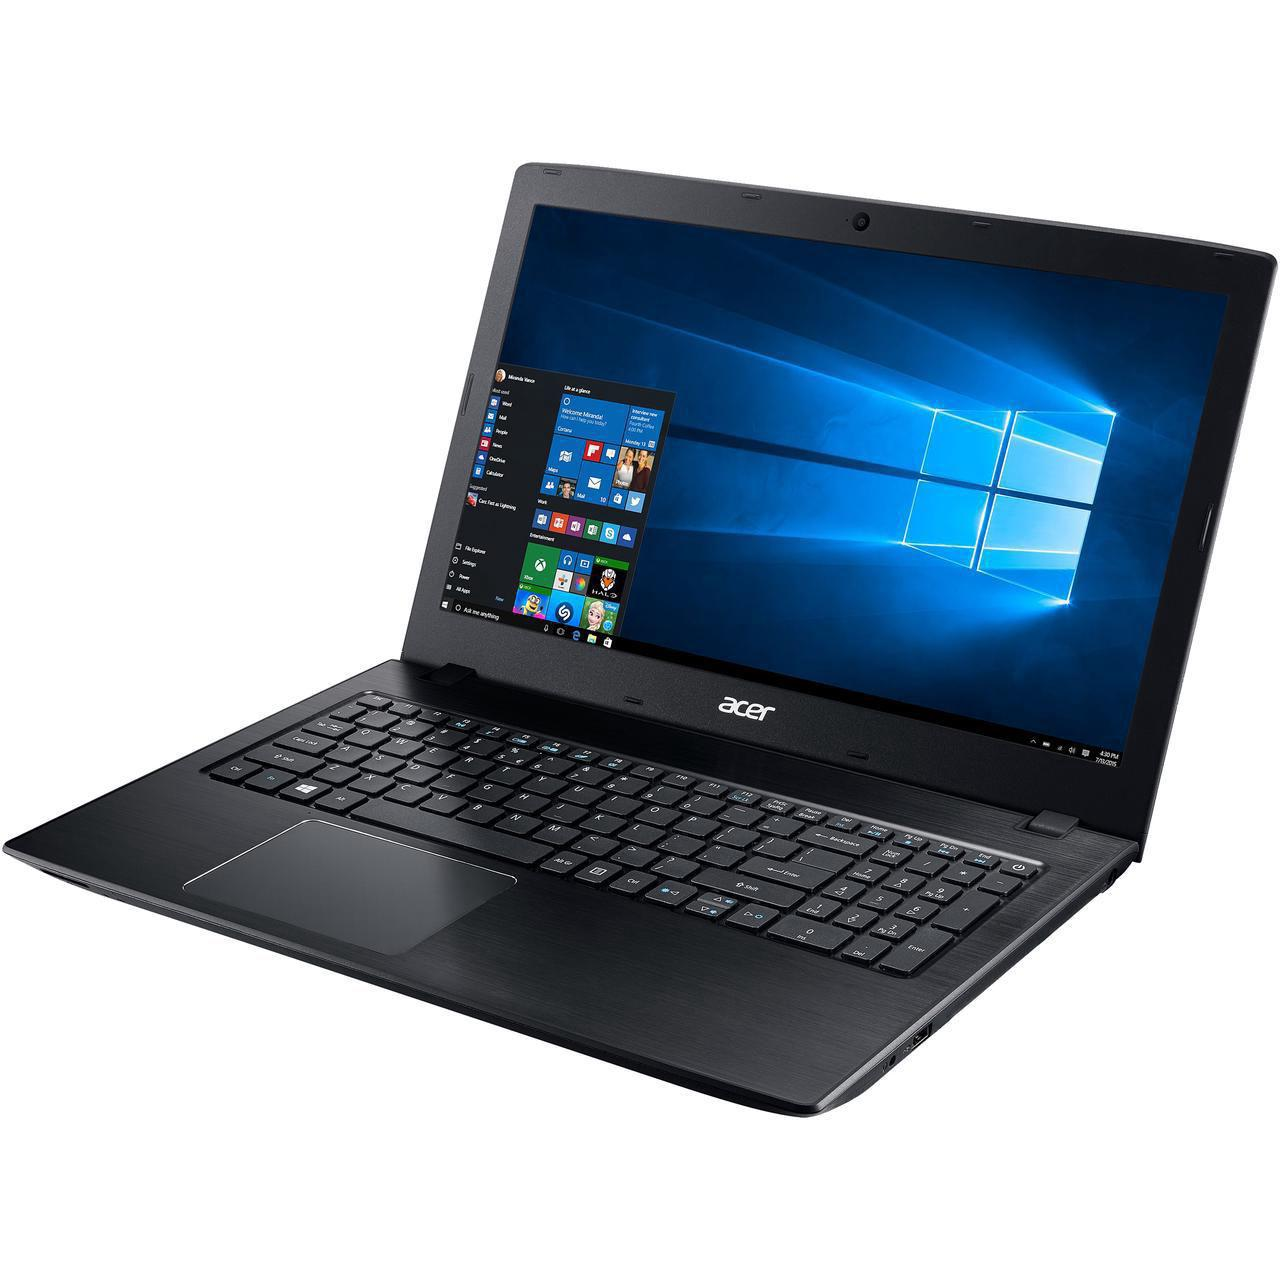 Acer Aspire E5 15.6in i5 8GB Notebook Laptop